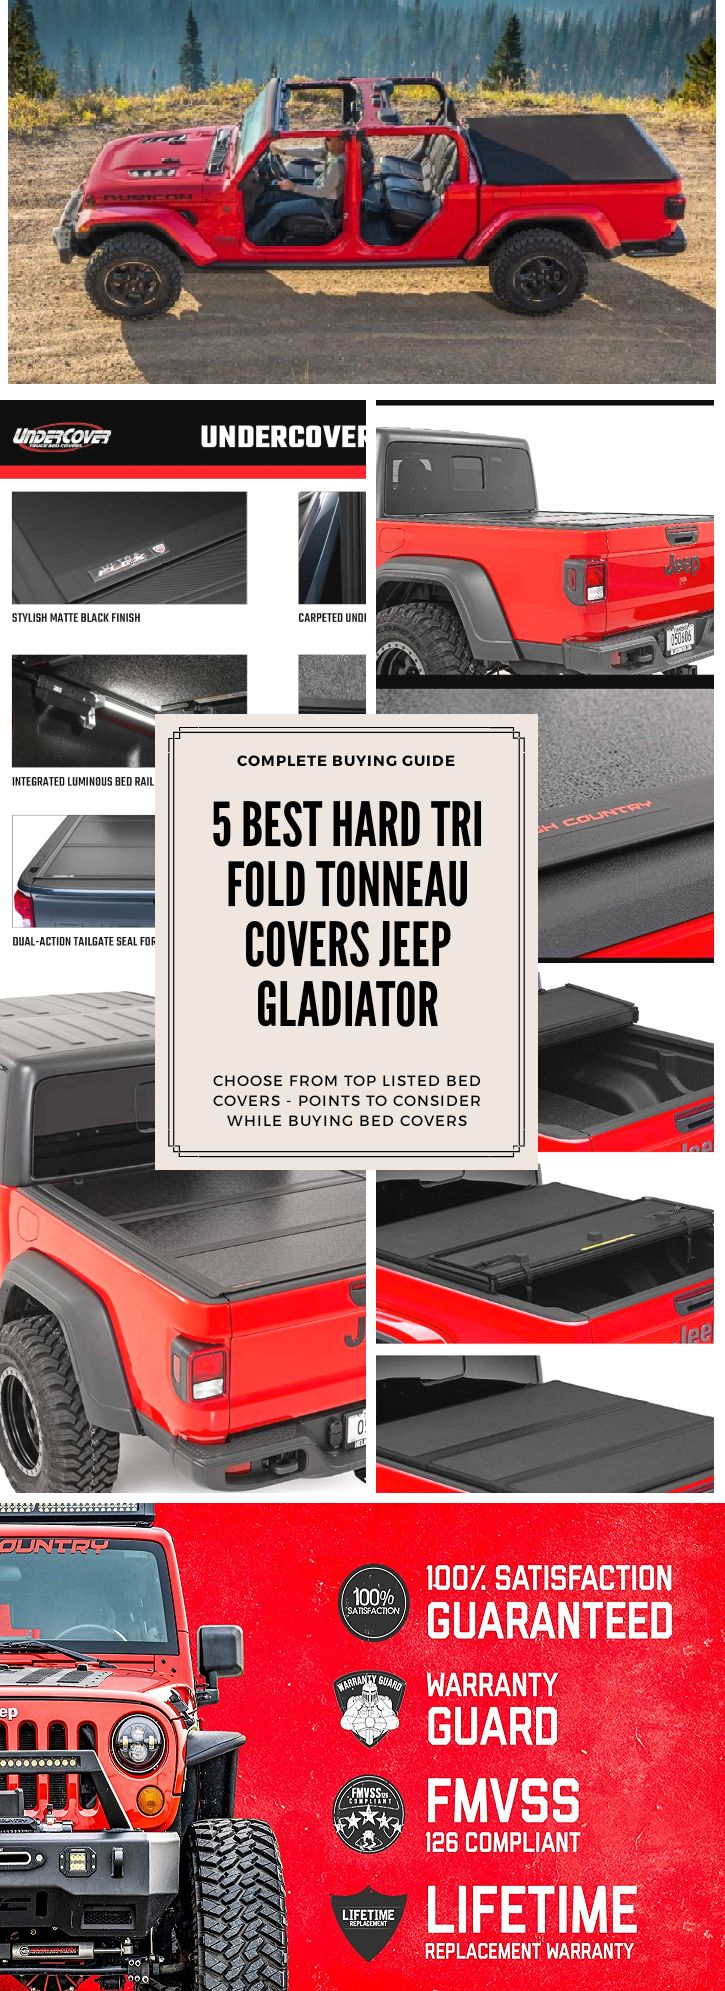 5 Top Rated Hard TriFold Tonneau Cover for Jeep Gladiator